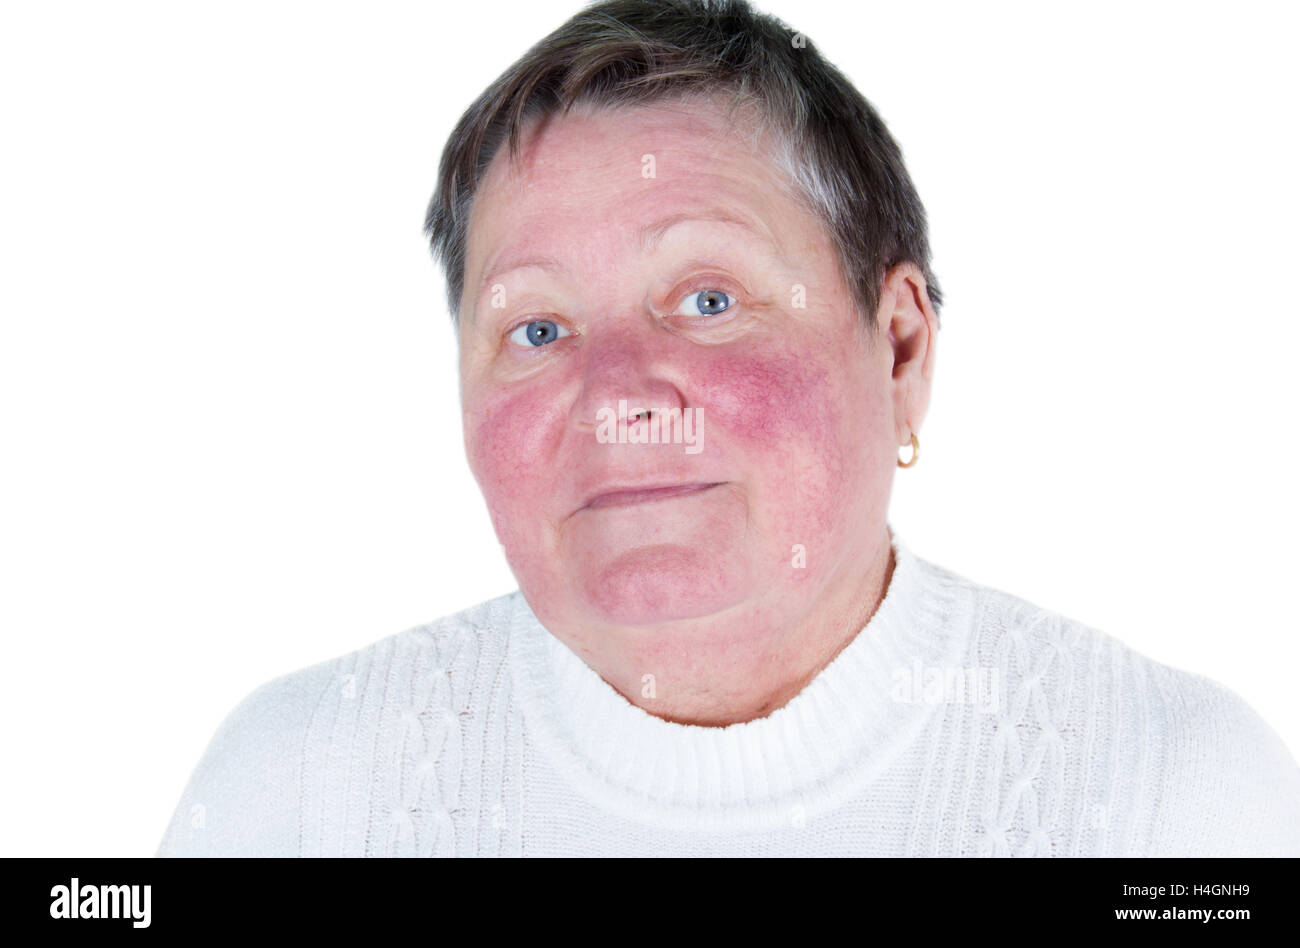 Unhappy elderly woman with skin condition rosacea characterized by facial redness, small and superficial dilated blood vessels,  Stock Photo